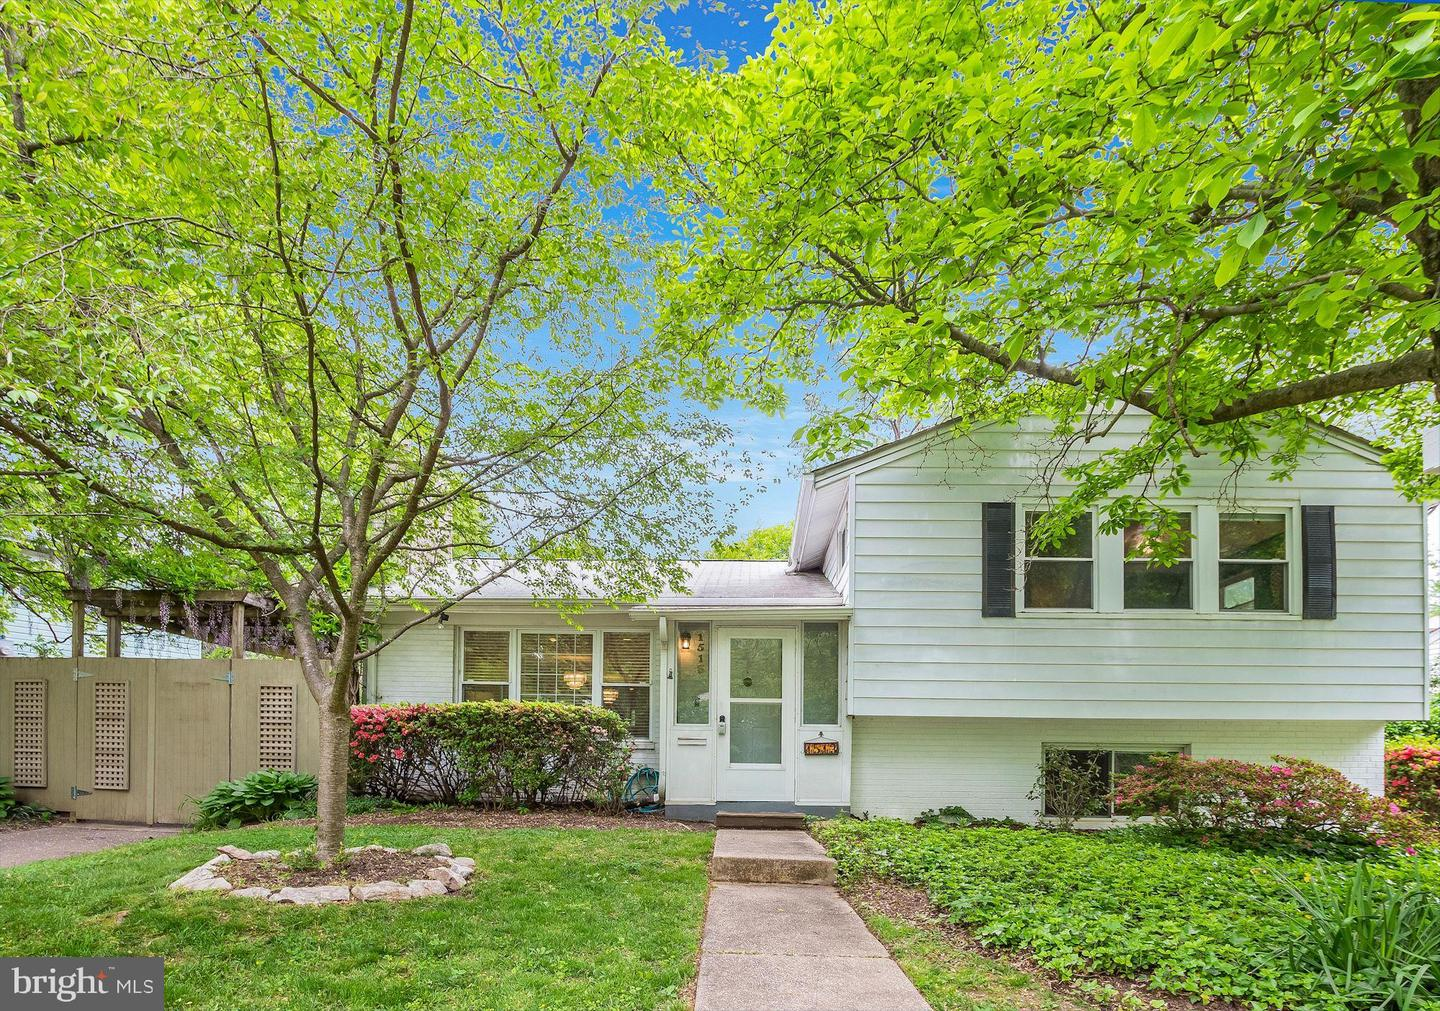 1513 WOODMAN AVE, SILVER SPRING, Maryland 20902, 3 Bedrooms Bedrooms, ,2 BathroomsBathrooms,Single Family,For Sale,1513 WOODMAN AVE,MDMC755604